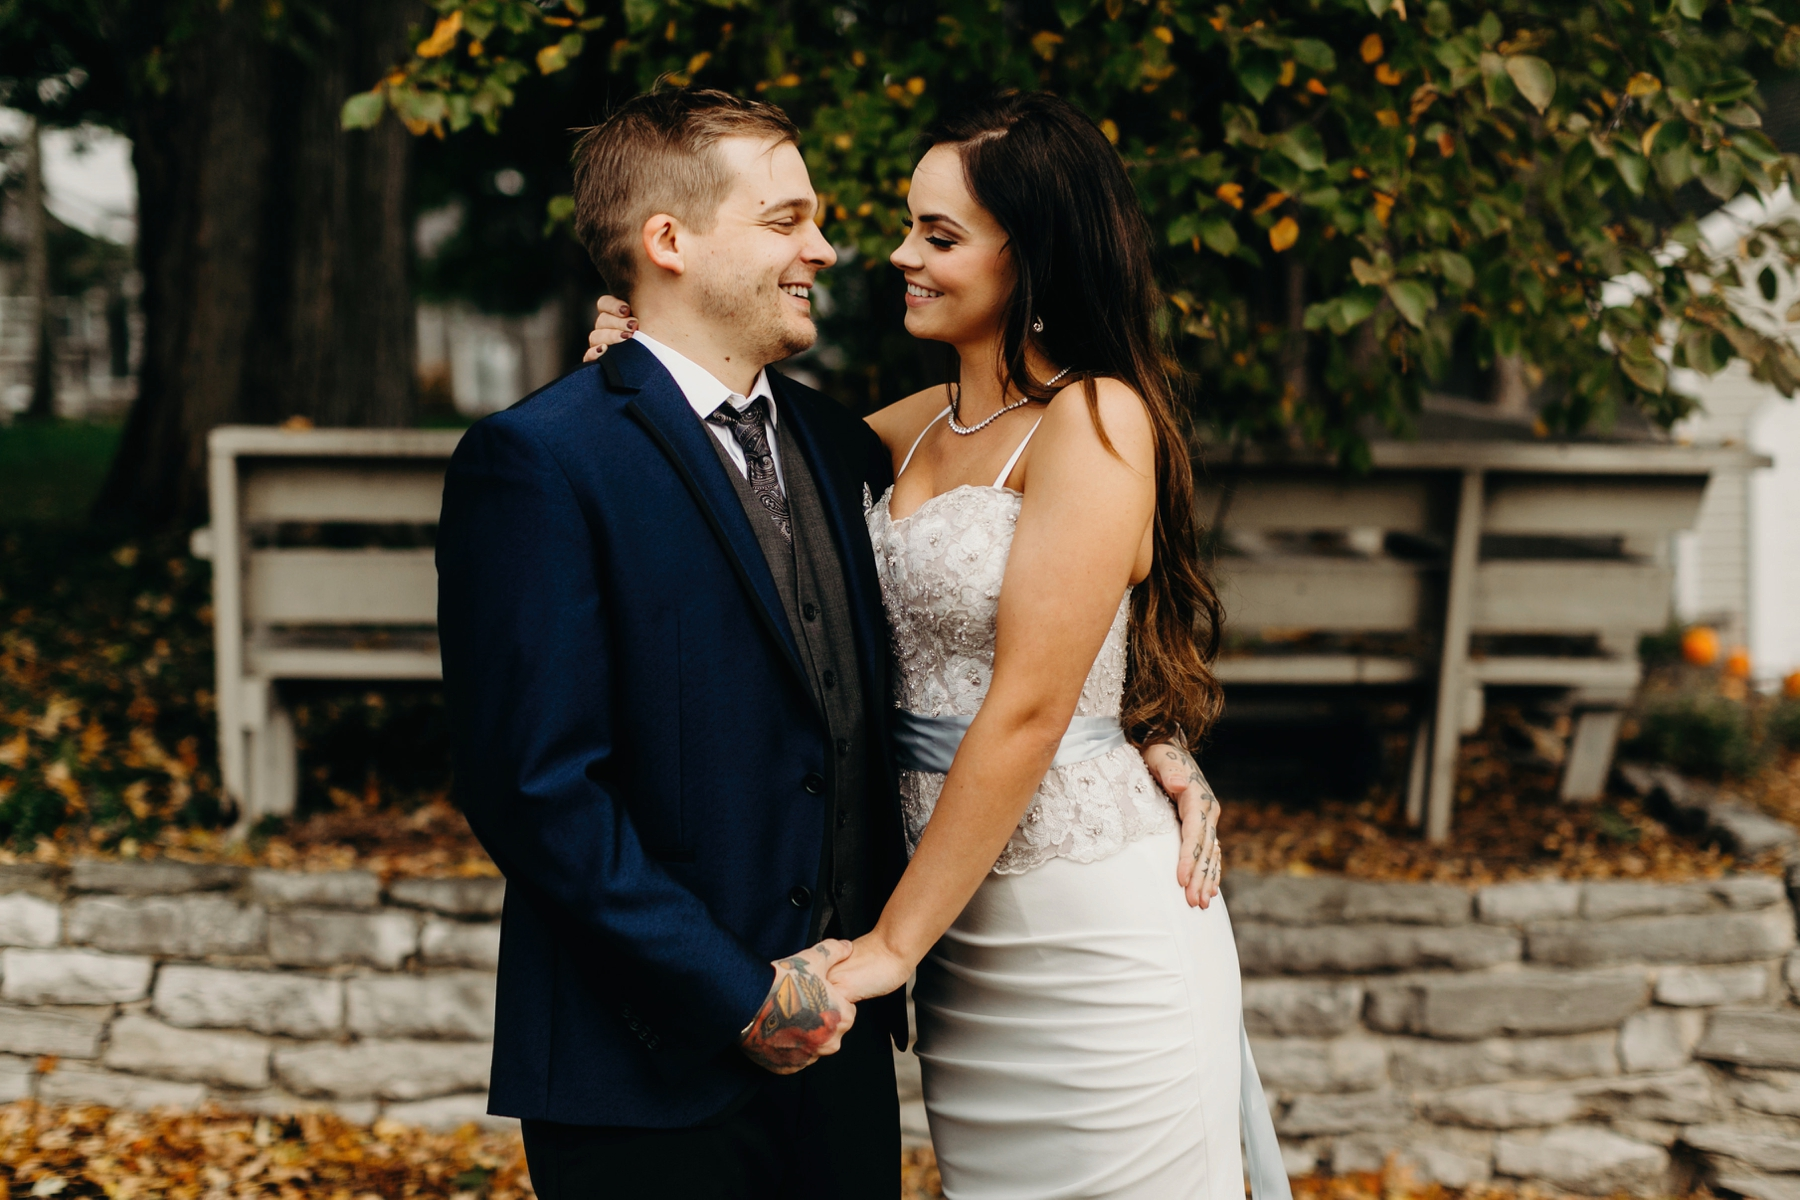 elopement-photographer-ryan-jimmy70.JPG